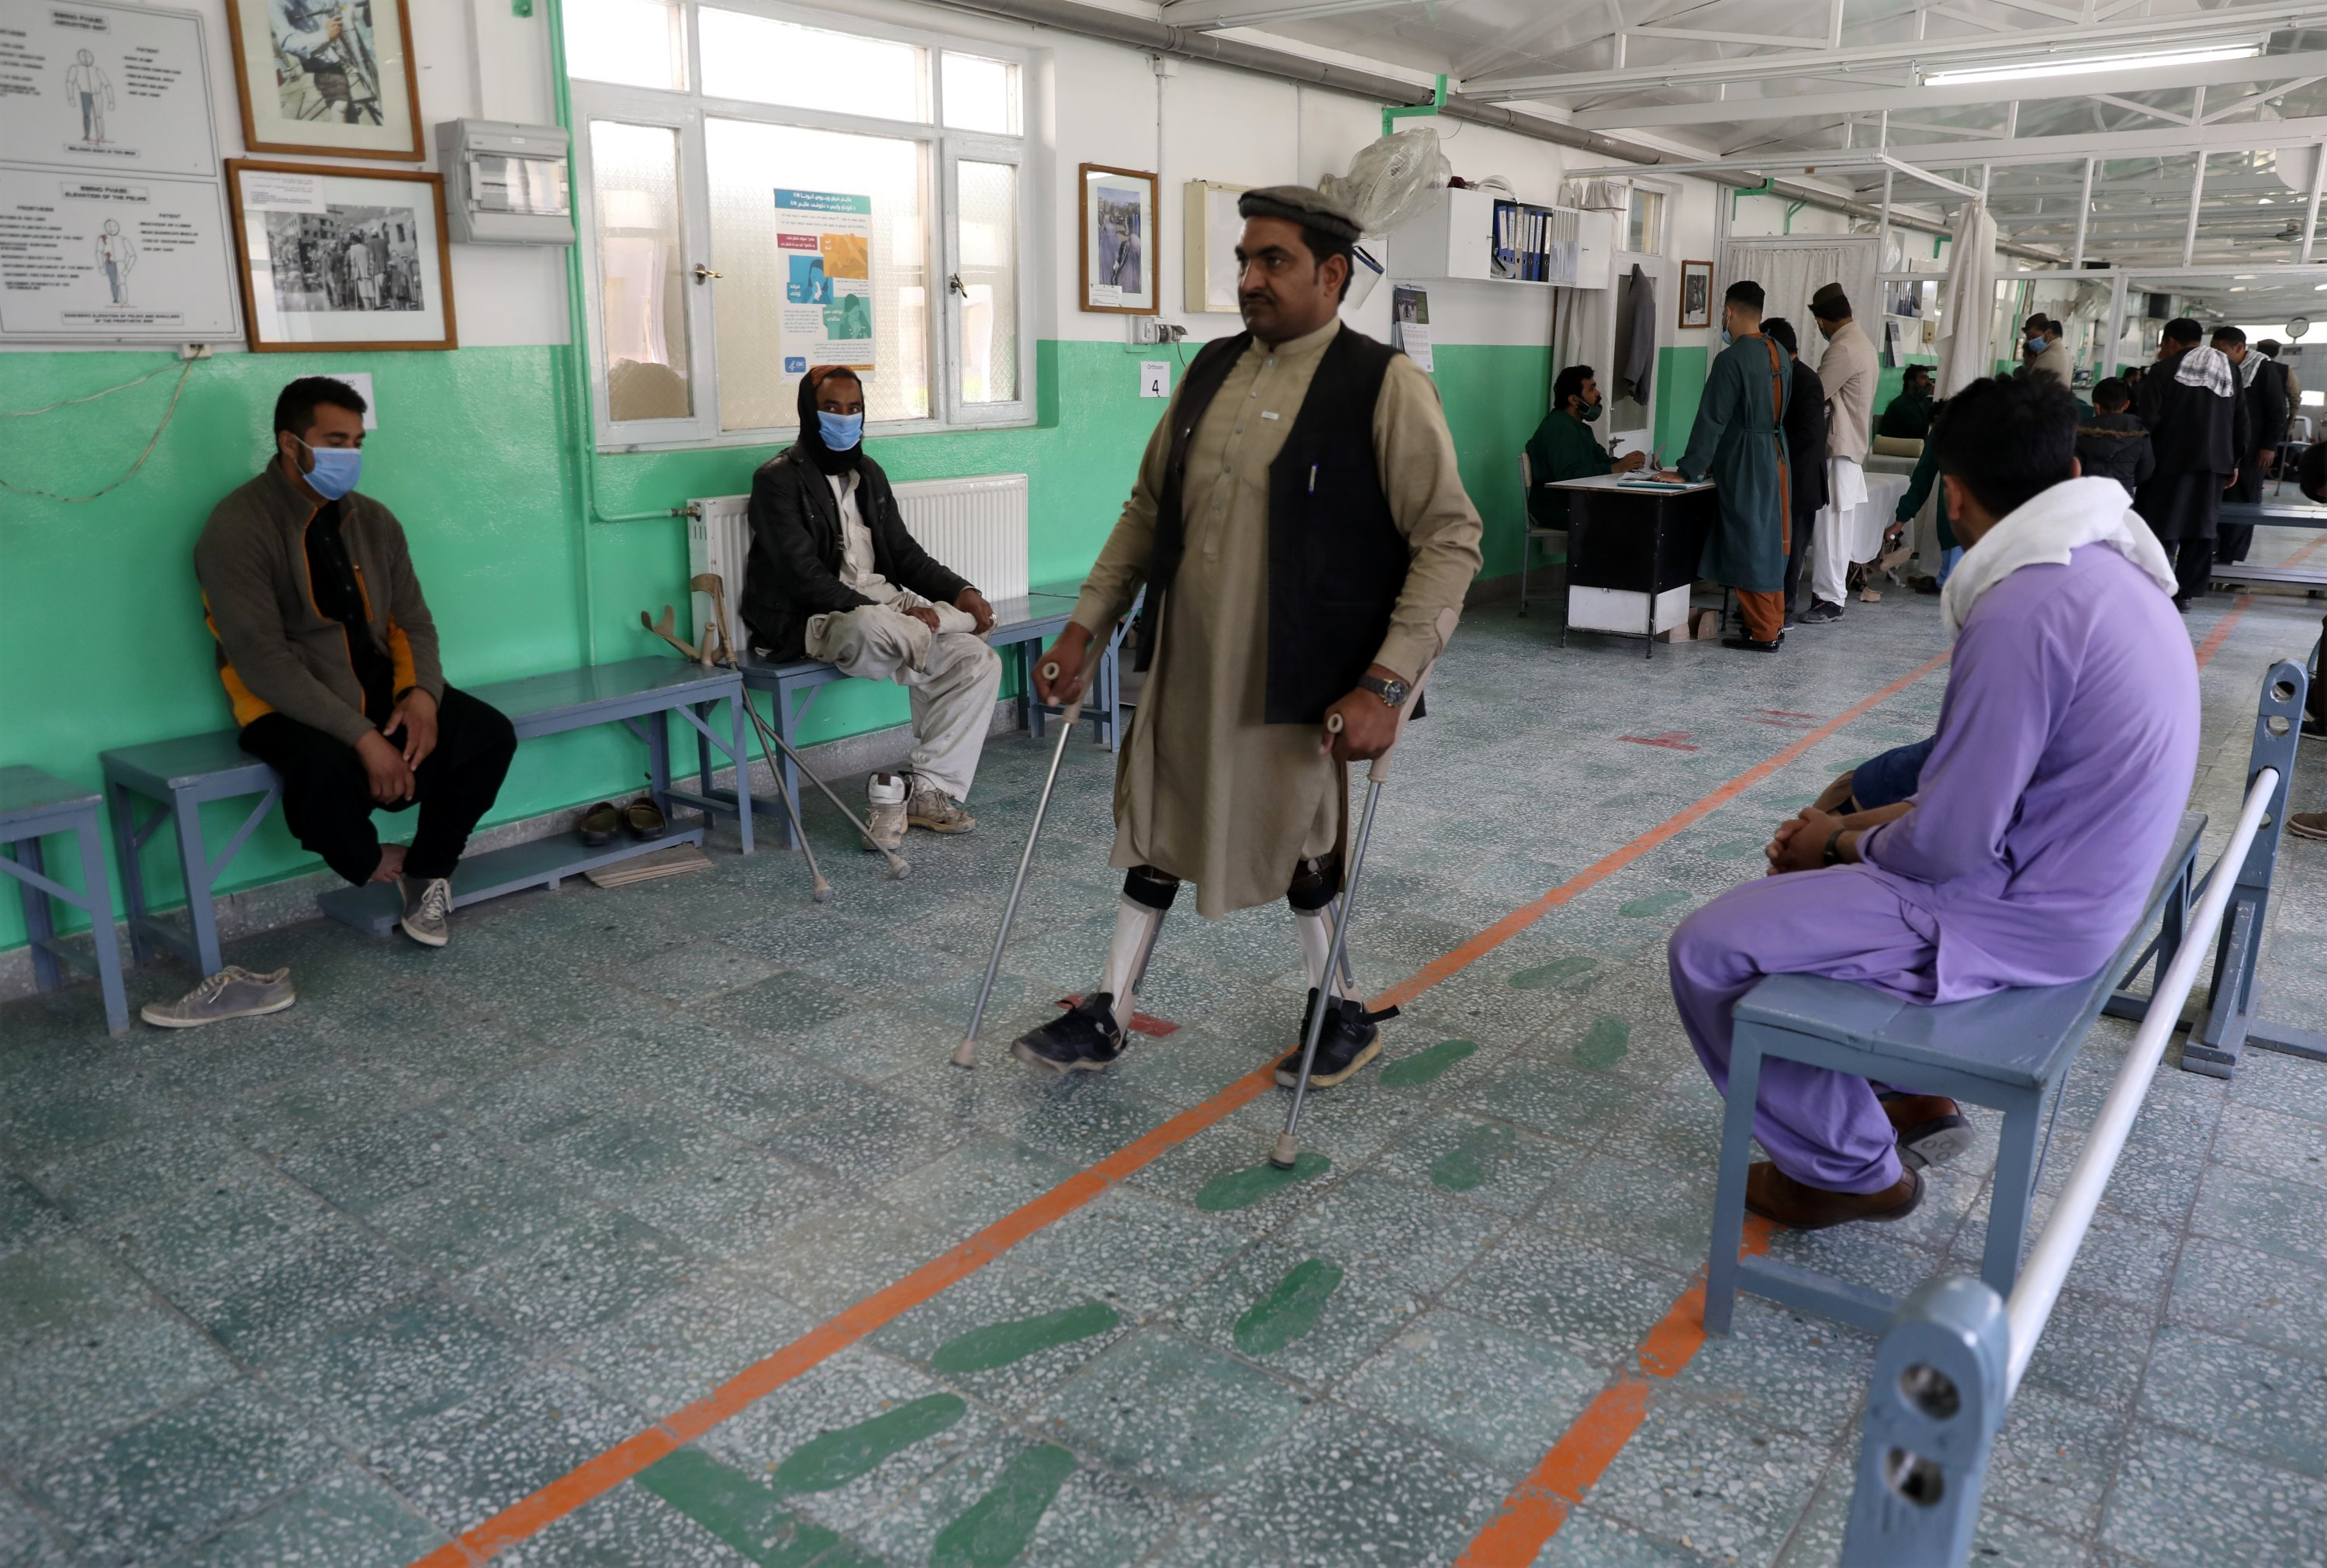 Afghan polio patient Maiwa Gul tests his new orthopedic devices at the International Committee of the Red Cross' Orthopedic Program, in Kabul, Afghanistan, March 29, 2021. (AP Photo)